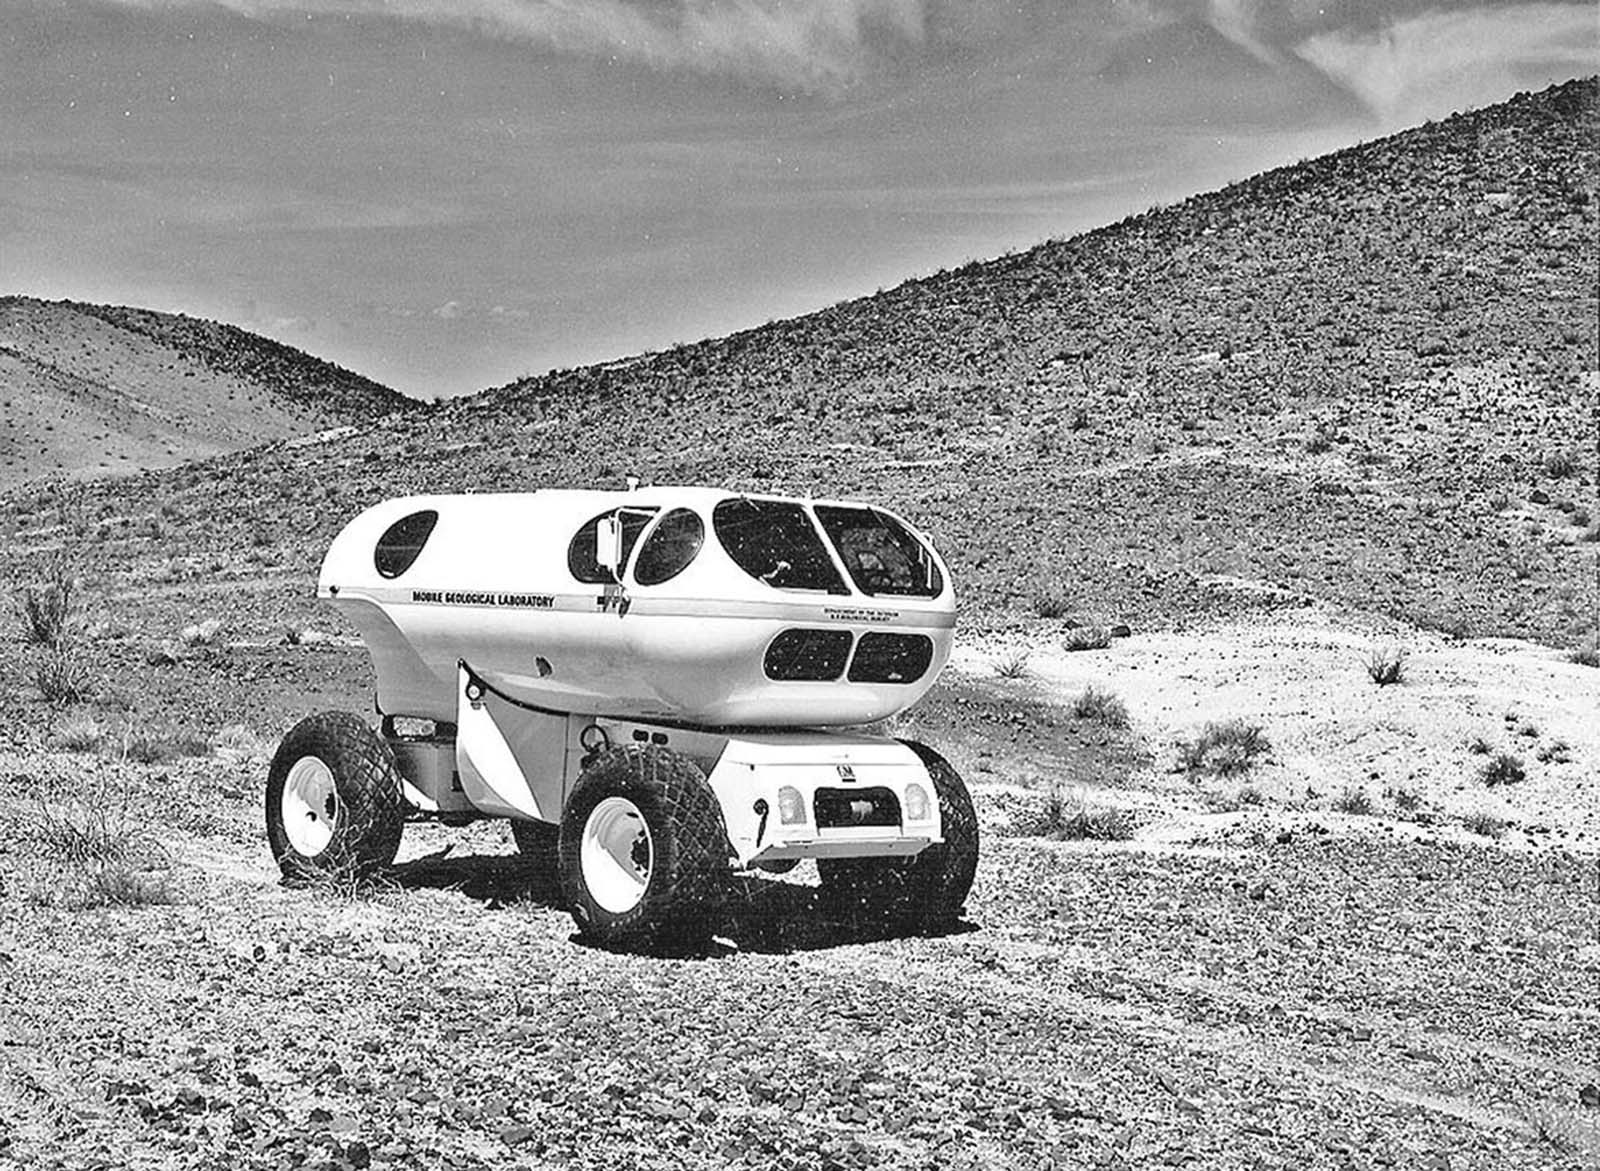 The Mobile Geological Laboratory, or MOLAB, an early-concept lunar vehicle, tests at Merriam Crater, northeast of Flagstaff, Arizona, in 1966.